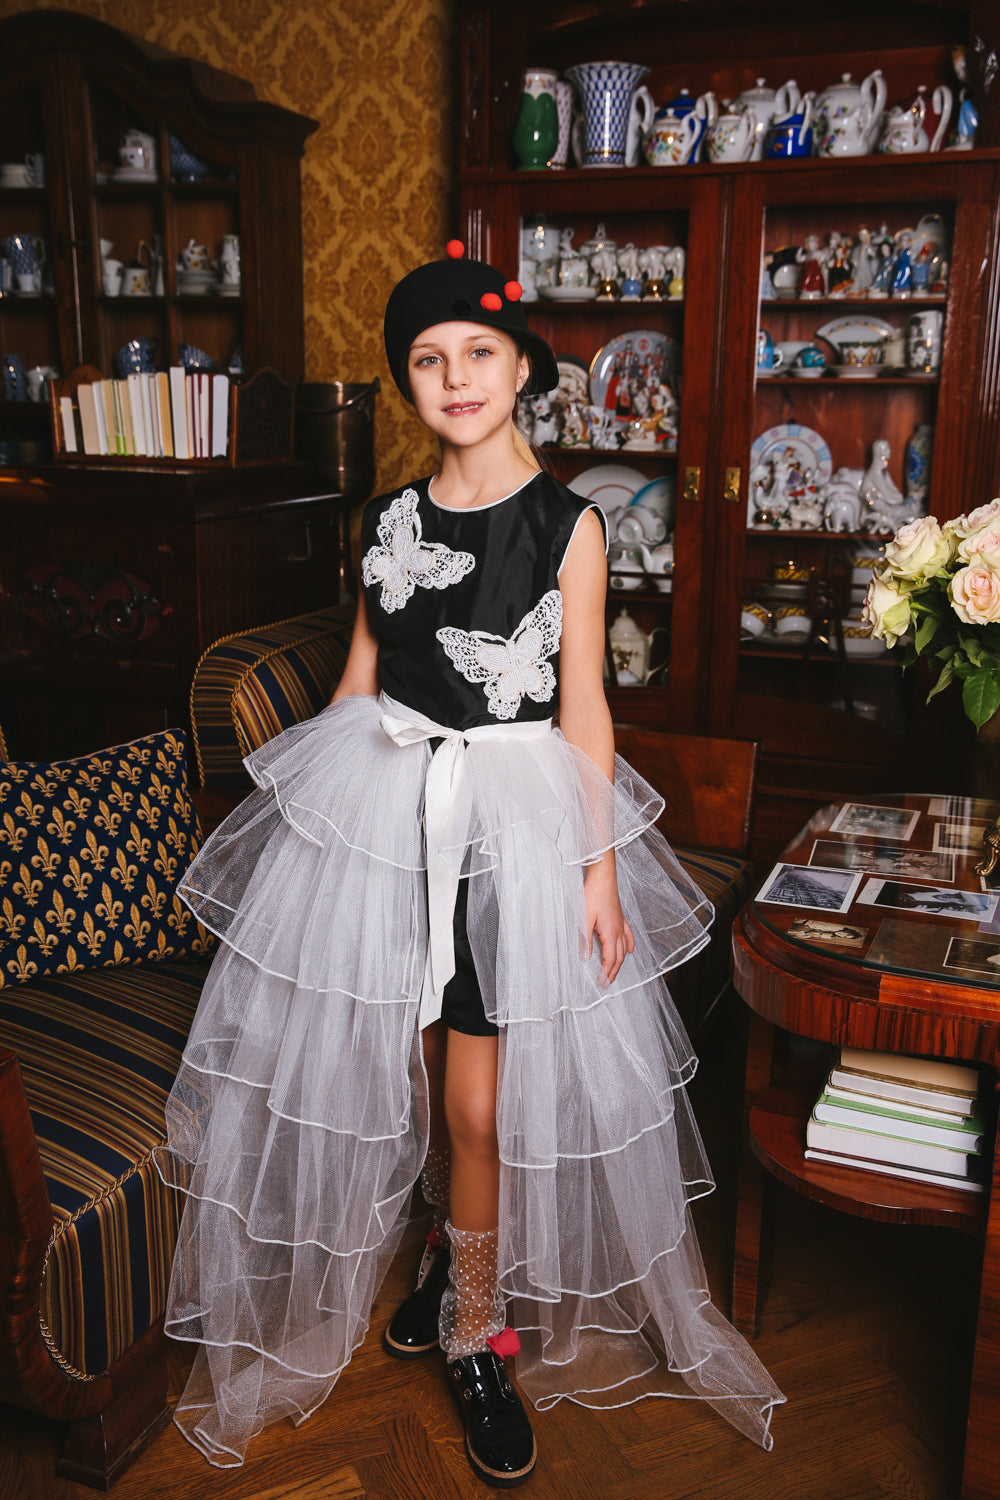 White Princess Butterfly Girls Maxi Tutu Skirt - LAZY FRANCIS - Shop in store at 406 Kings Road, Chelsea, London or shop online at www.lazyfrancis.com